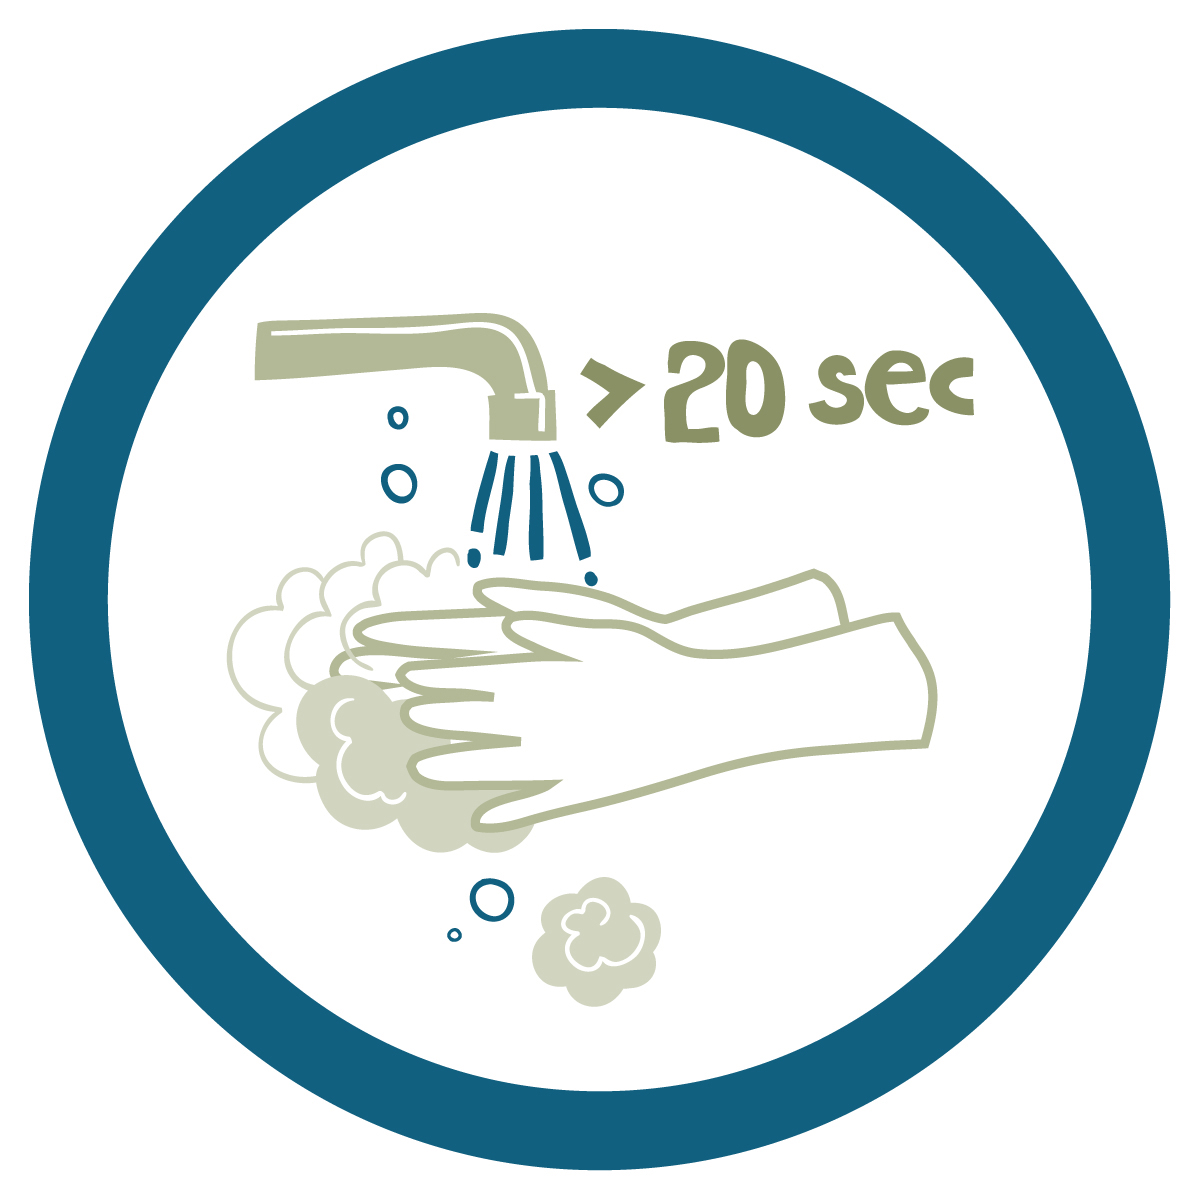 Wash hands for 20 seconds icon